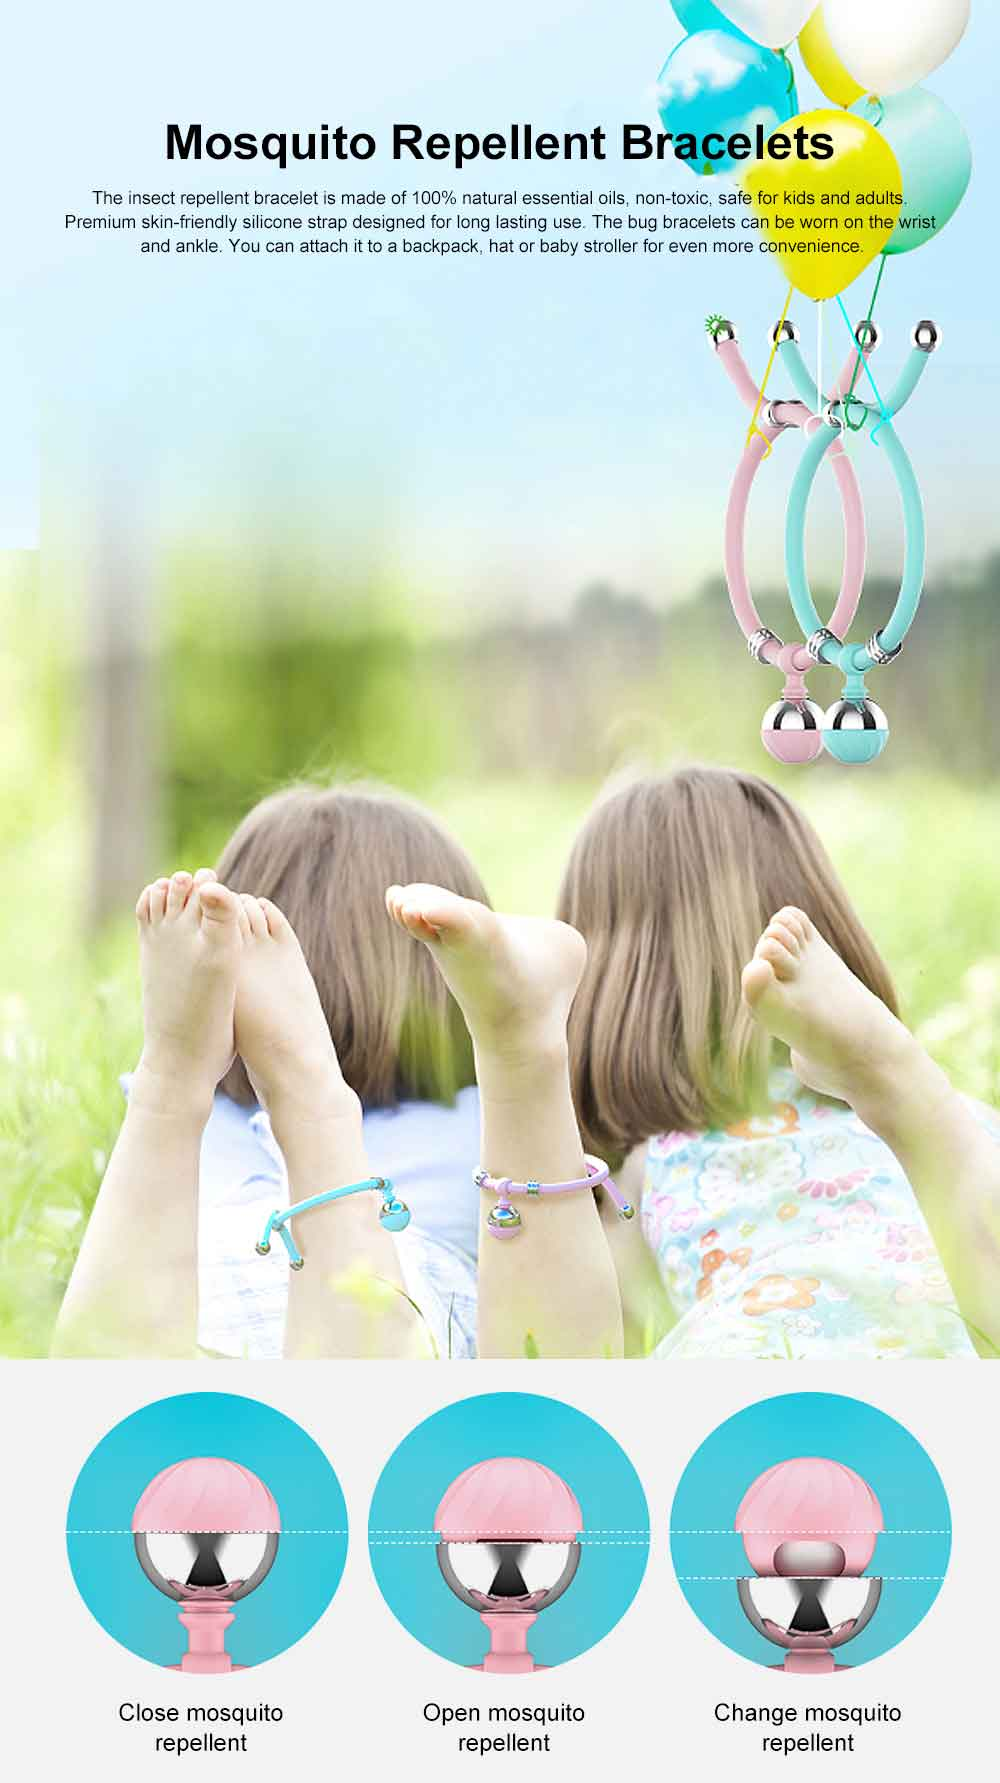 Mosquito Repellent Bracelets, Silicone Mosquito Insect Repeller for Kids Adults, Outdoors Mosquito Repellent Ball 0